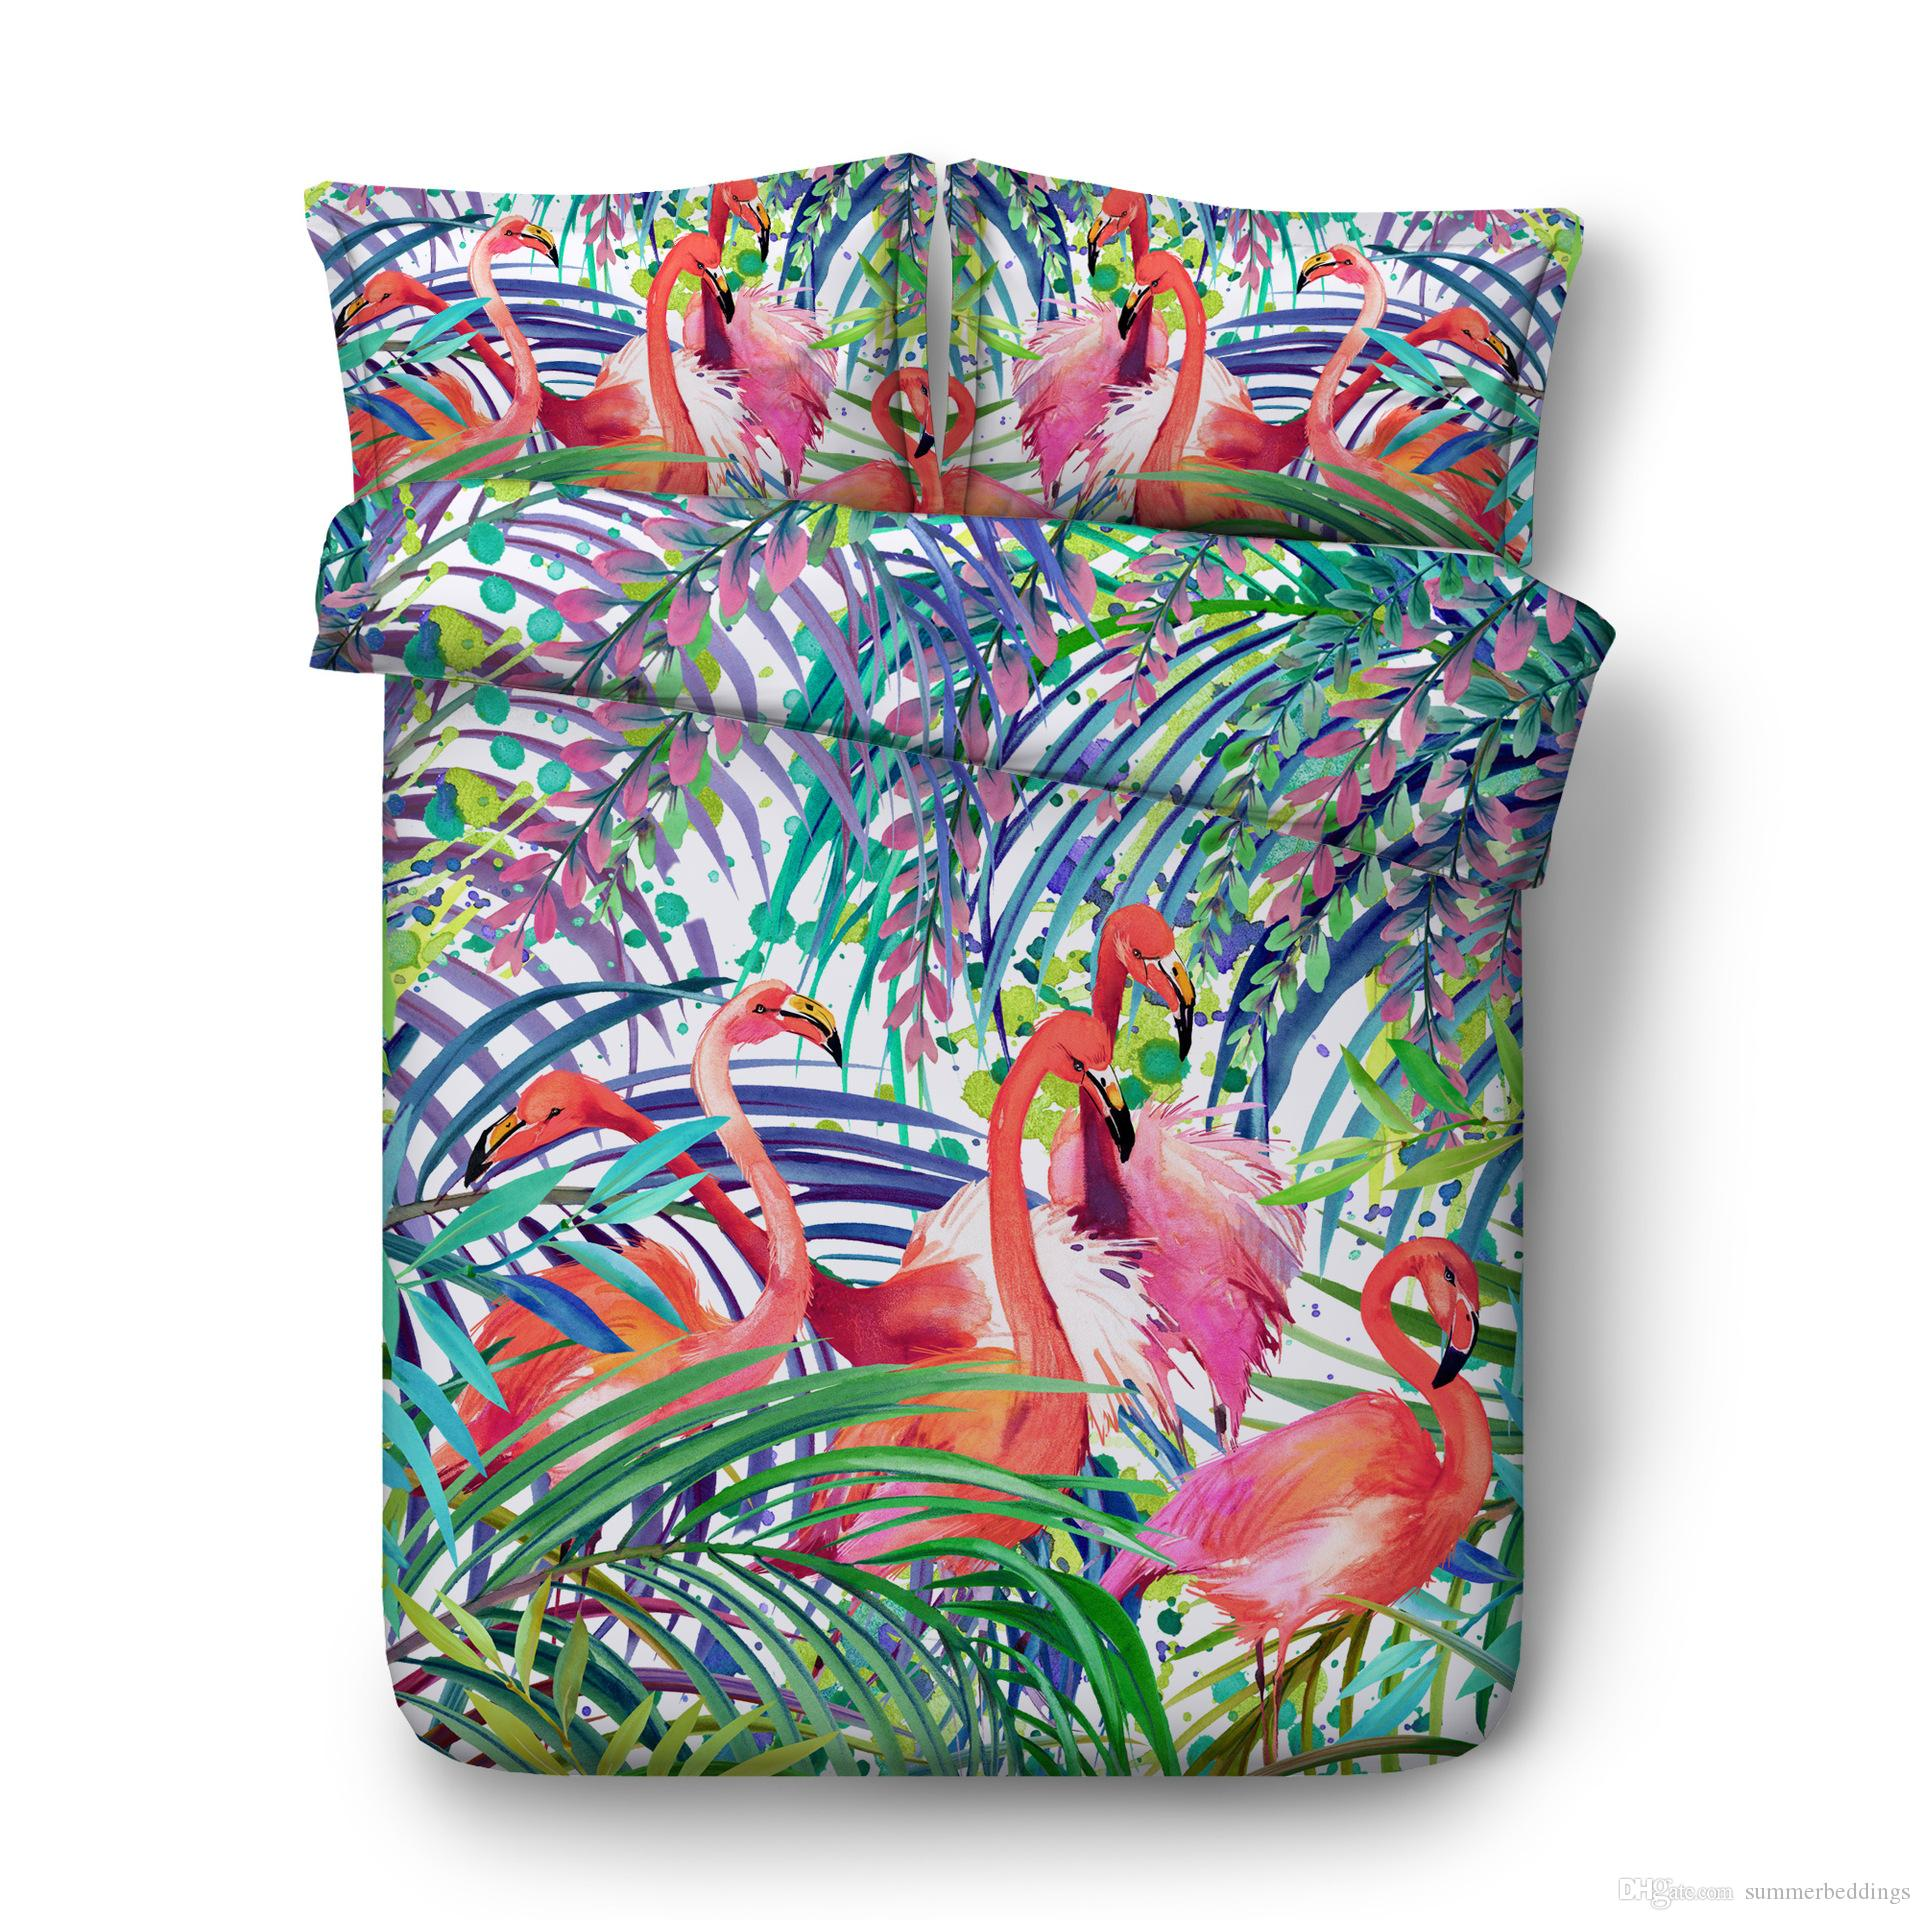 3D Owl Duvet Cover Zebra butterfly Flamingo leopard Bedding Sets Bedspreads Holiday Quilt Covers Bed Linen Pillow Covers California King